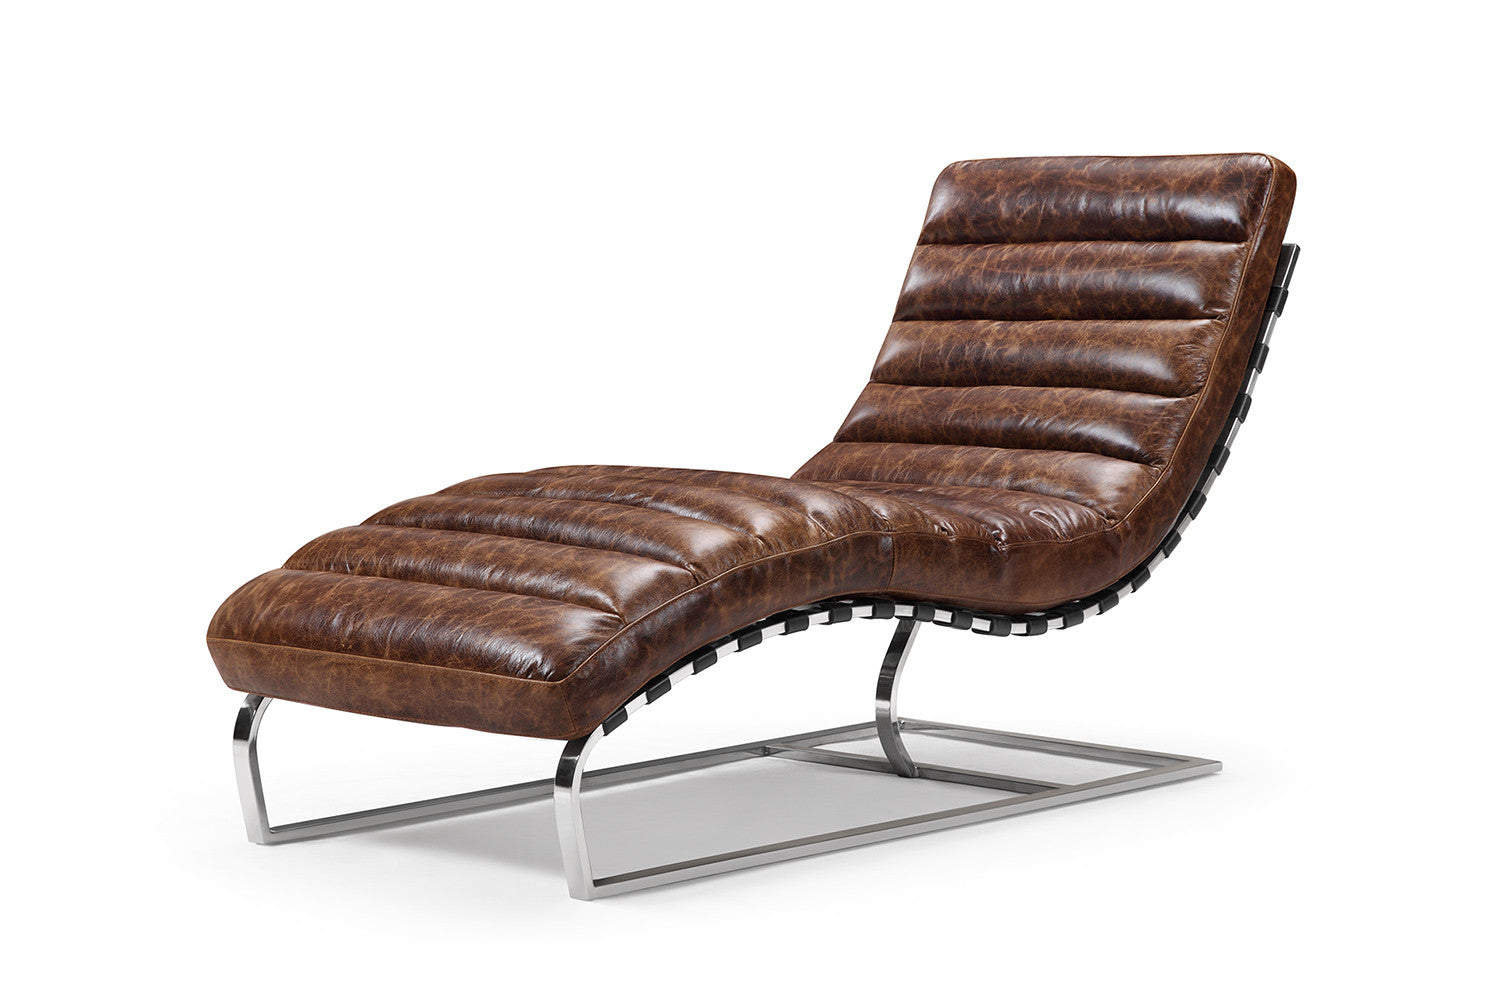 the leather chaise lounge rose and moore